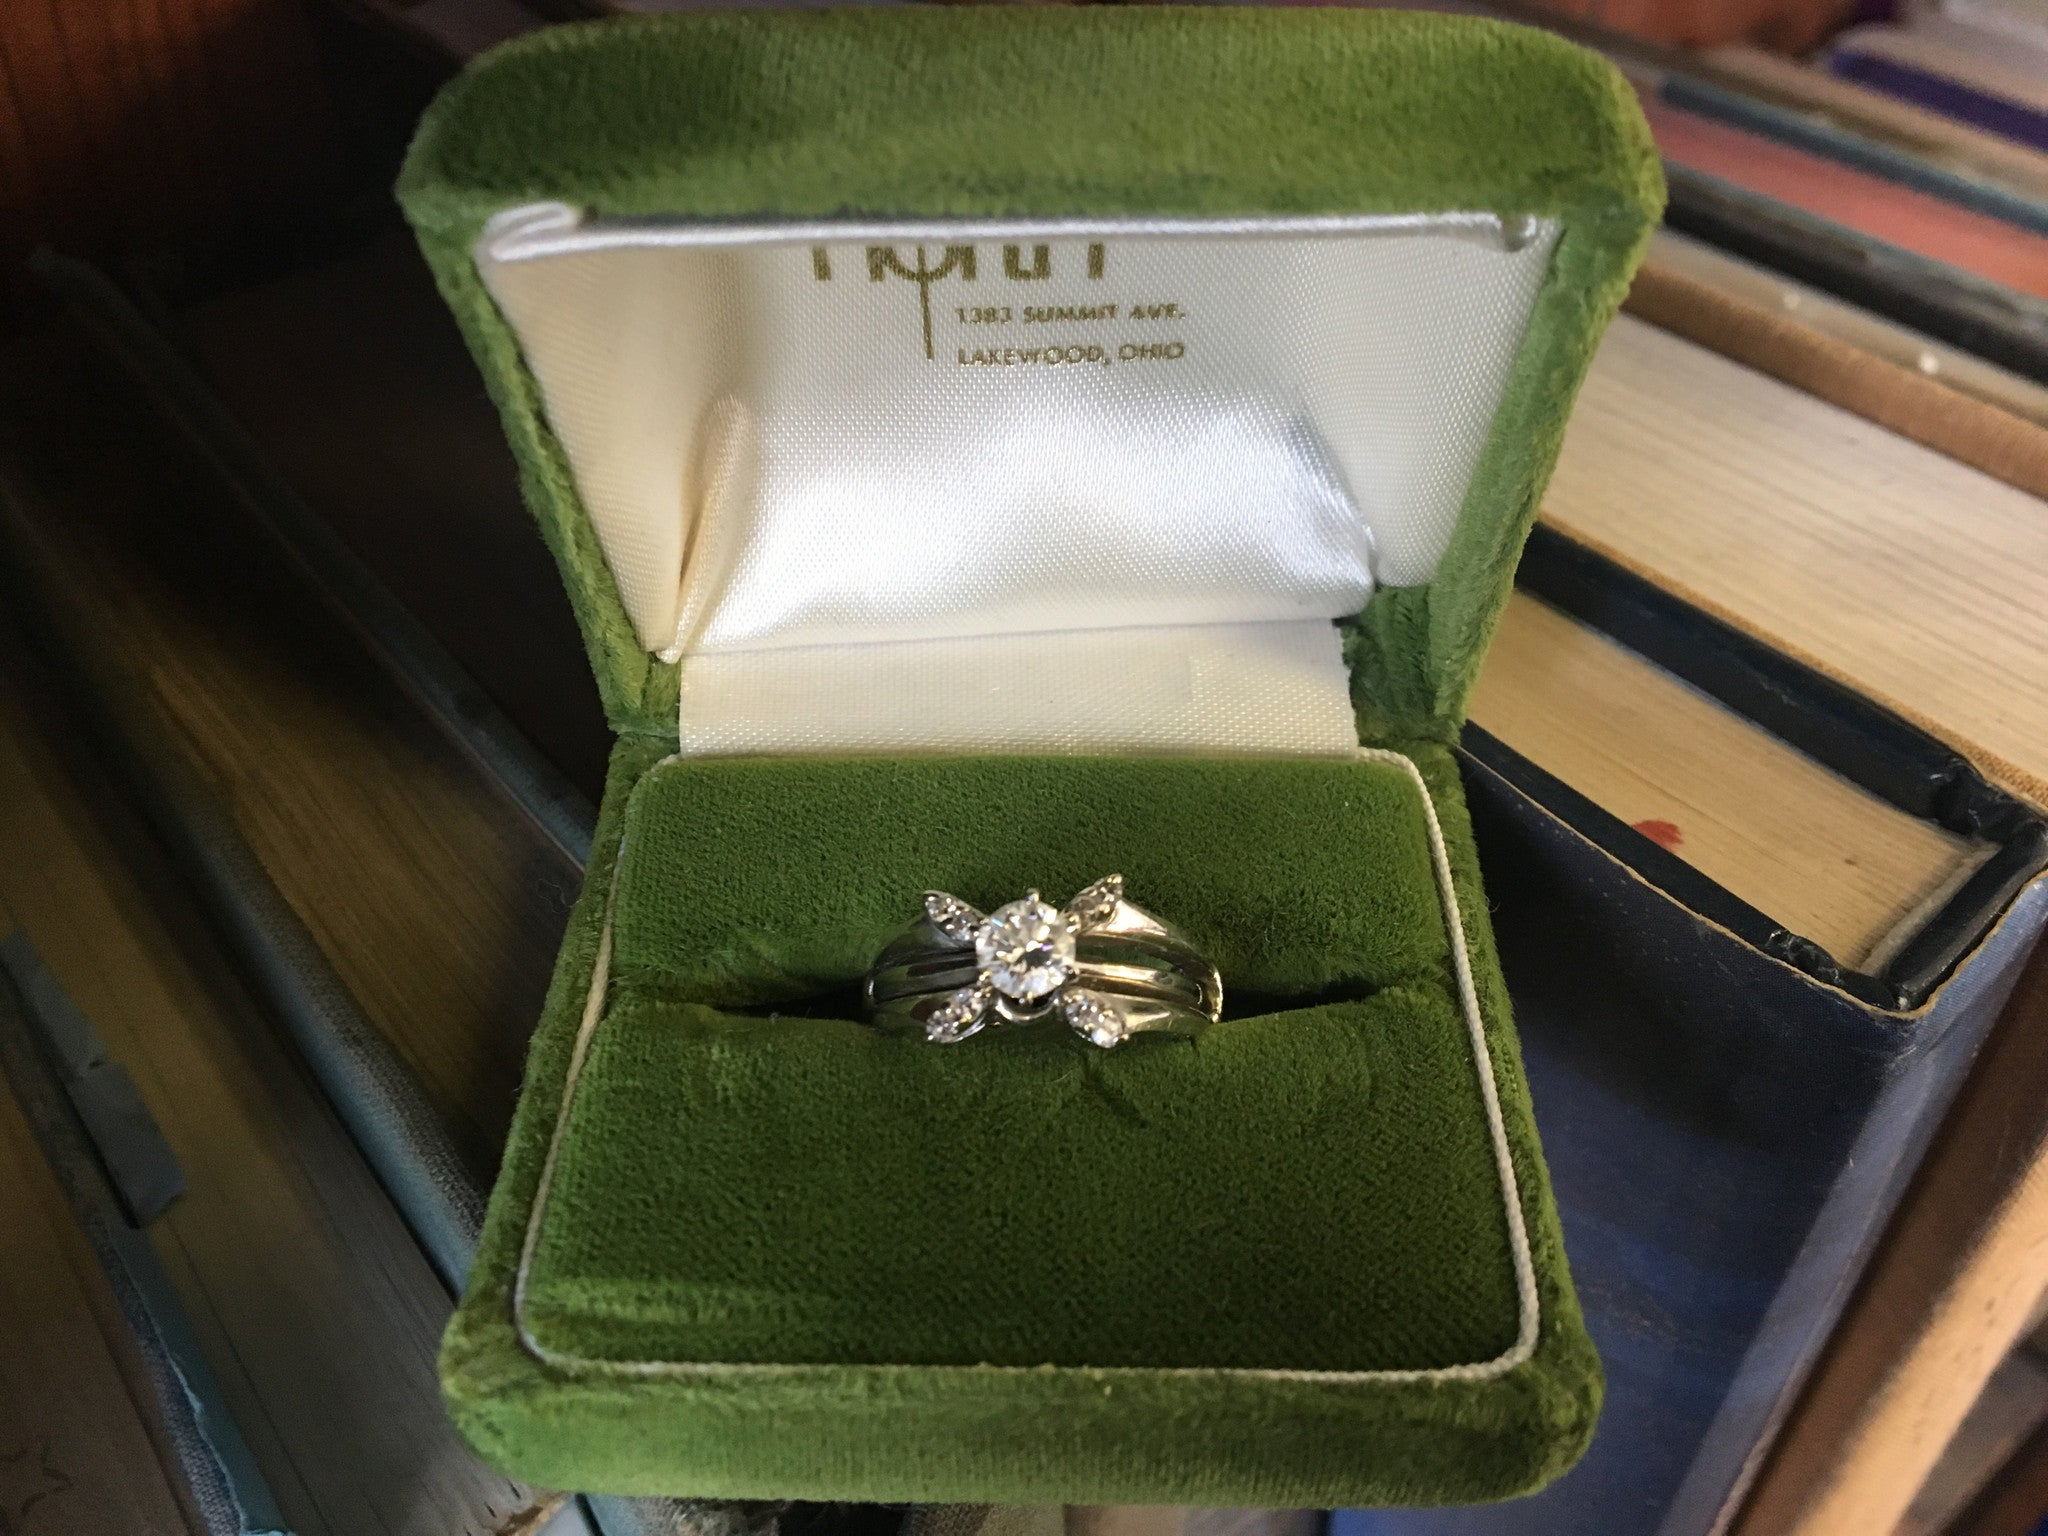 Before Picture of the Engagement Ring